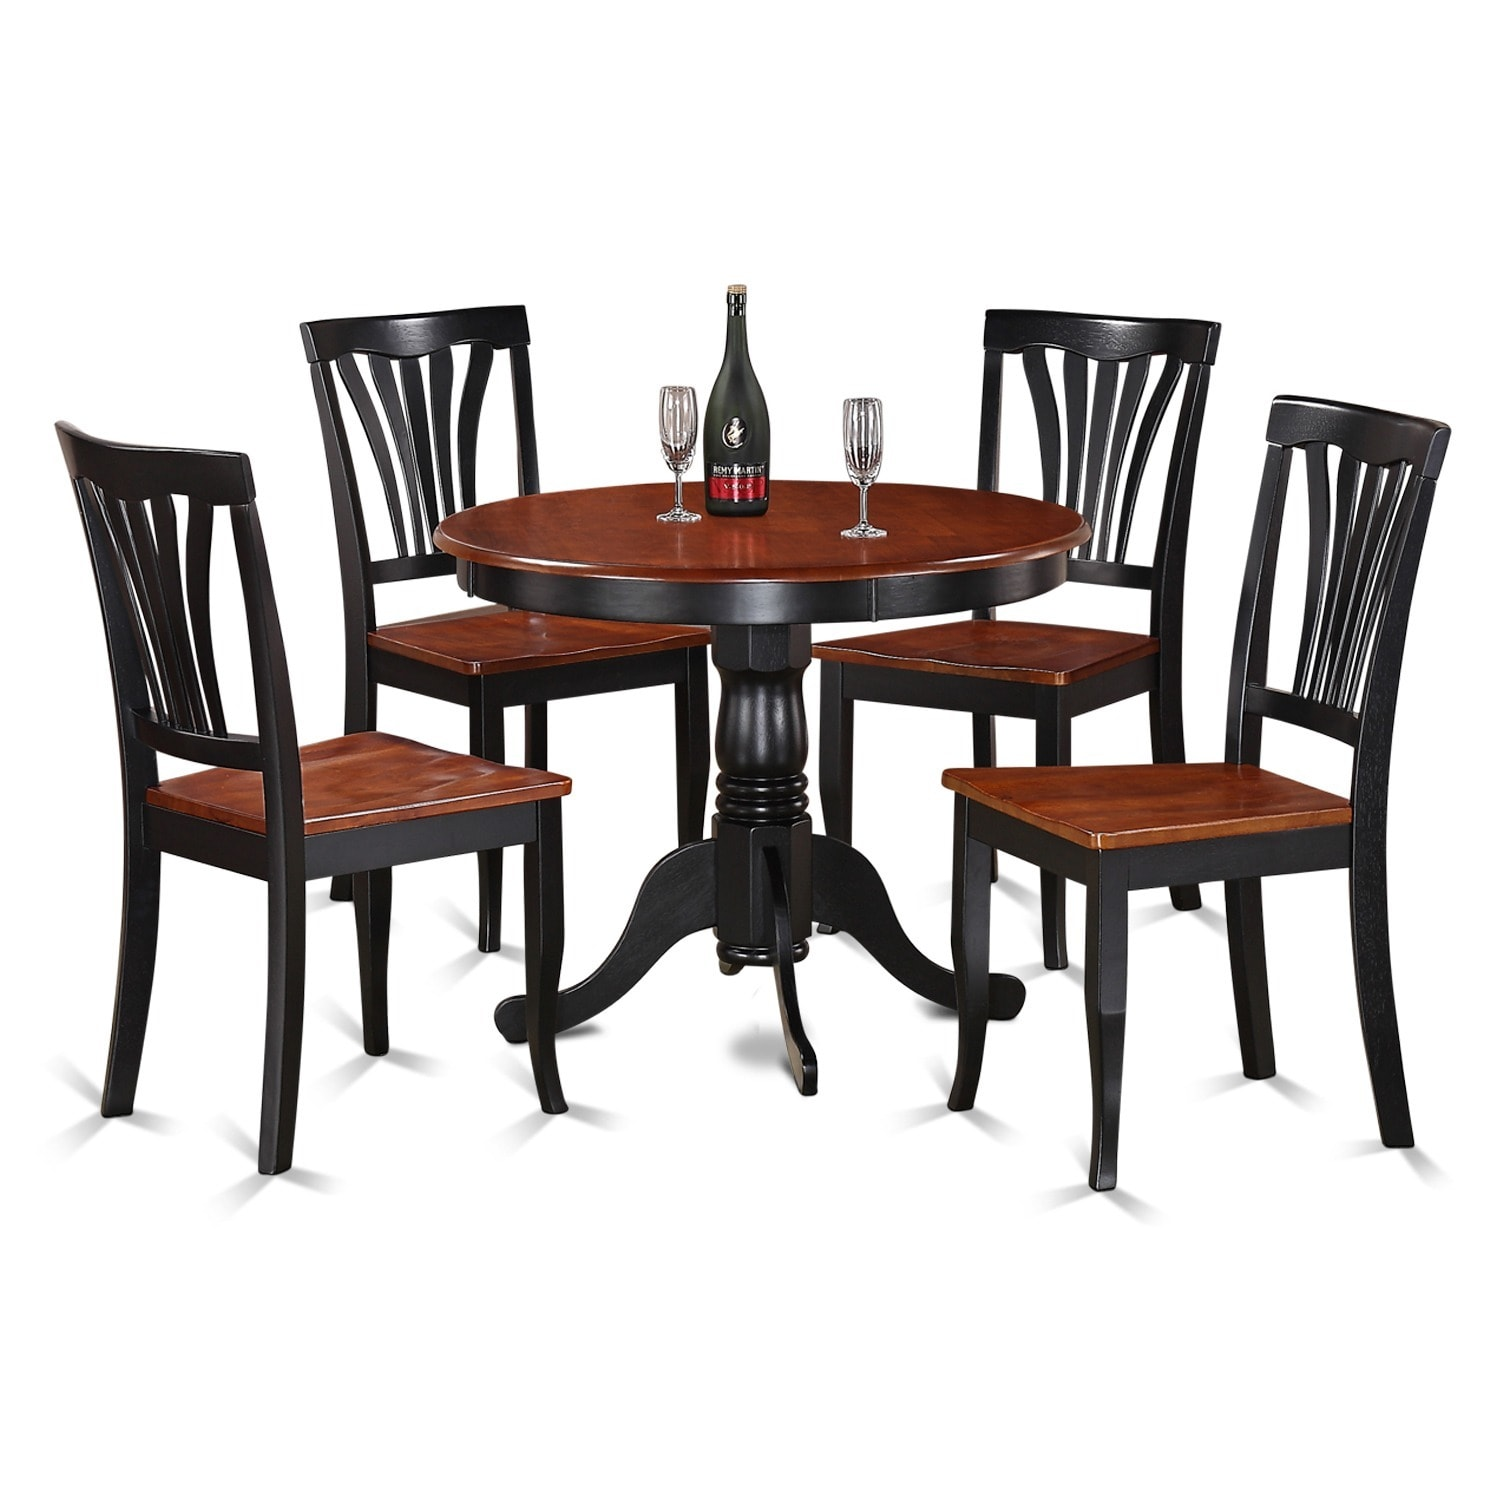 Buy Cherry Finish Kitchen & Dining Room Sets Online at ...